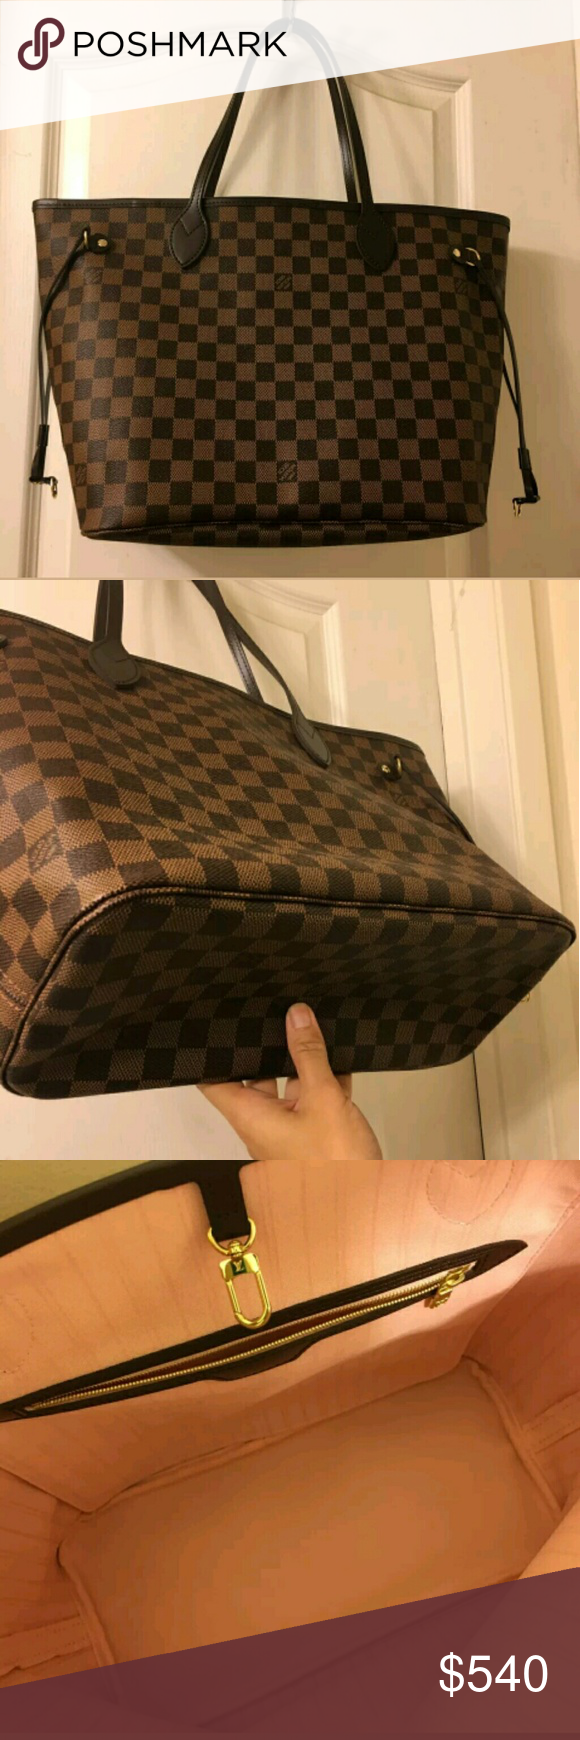 Louis Vuitton neverfull Neverfull Gm Has date code Used a couple of times Had for 3 months Great condition Can ship in 1-2 days No worn straps Can text me before buying might be on hold 5865710150 Louis Vuitton Bags